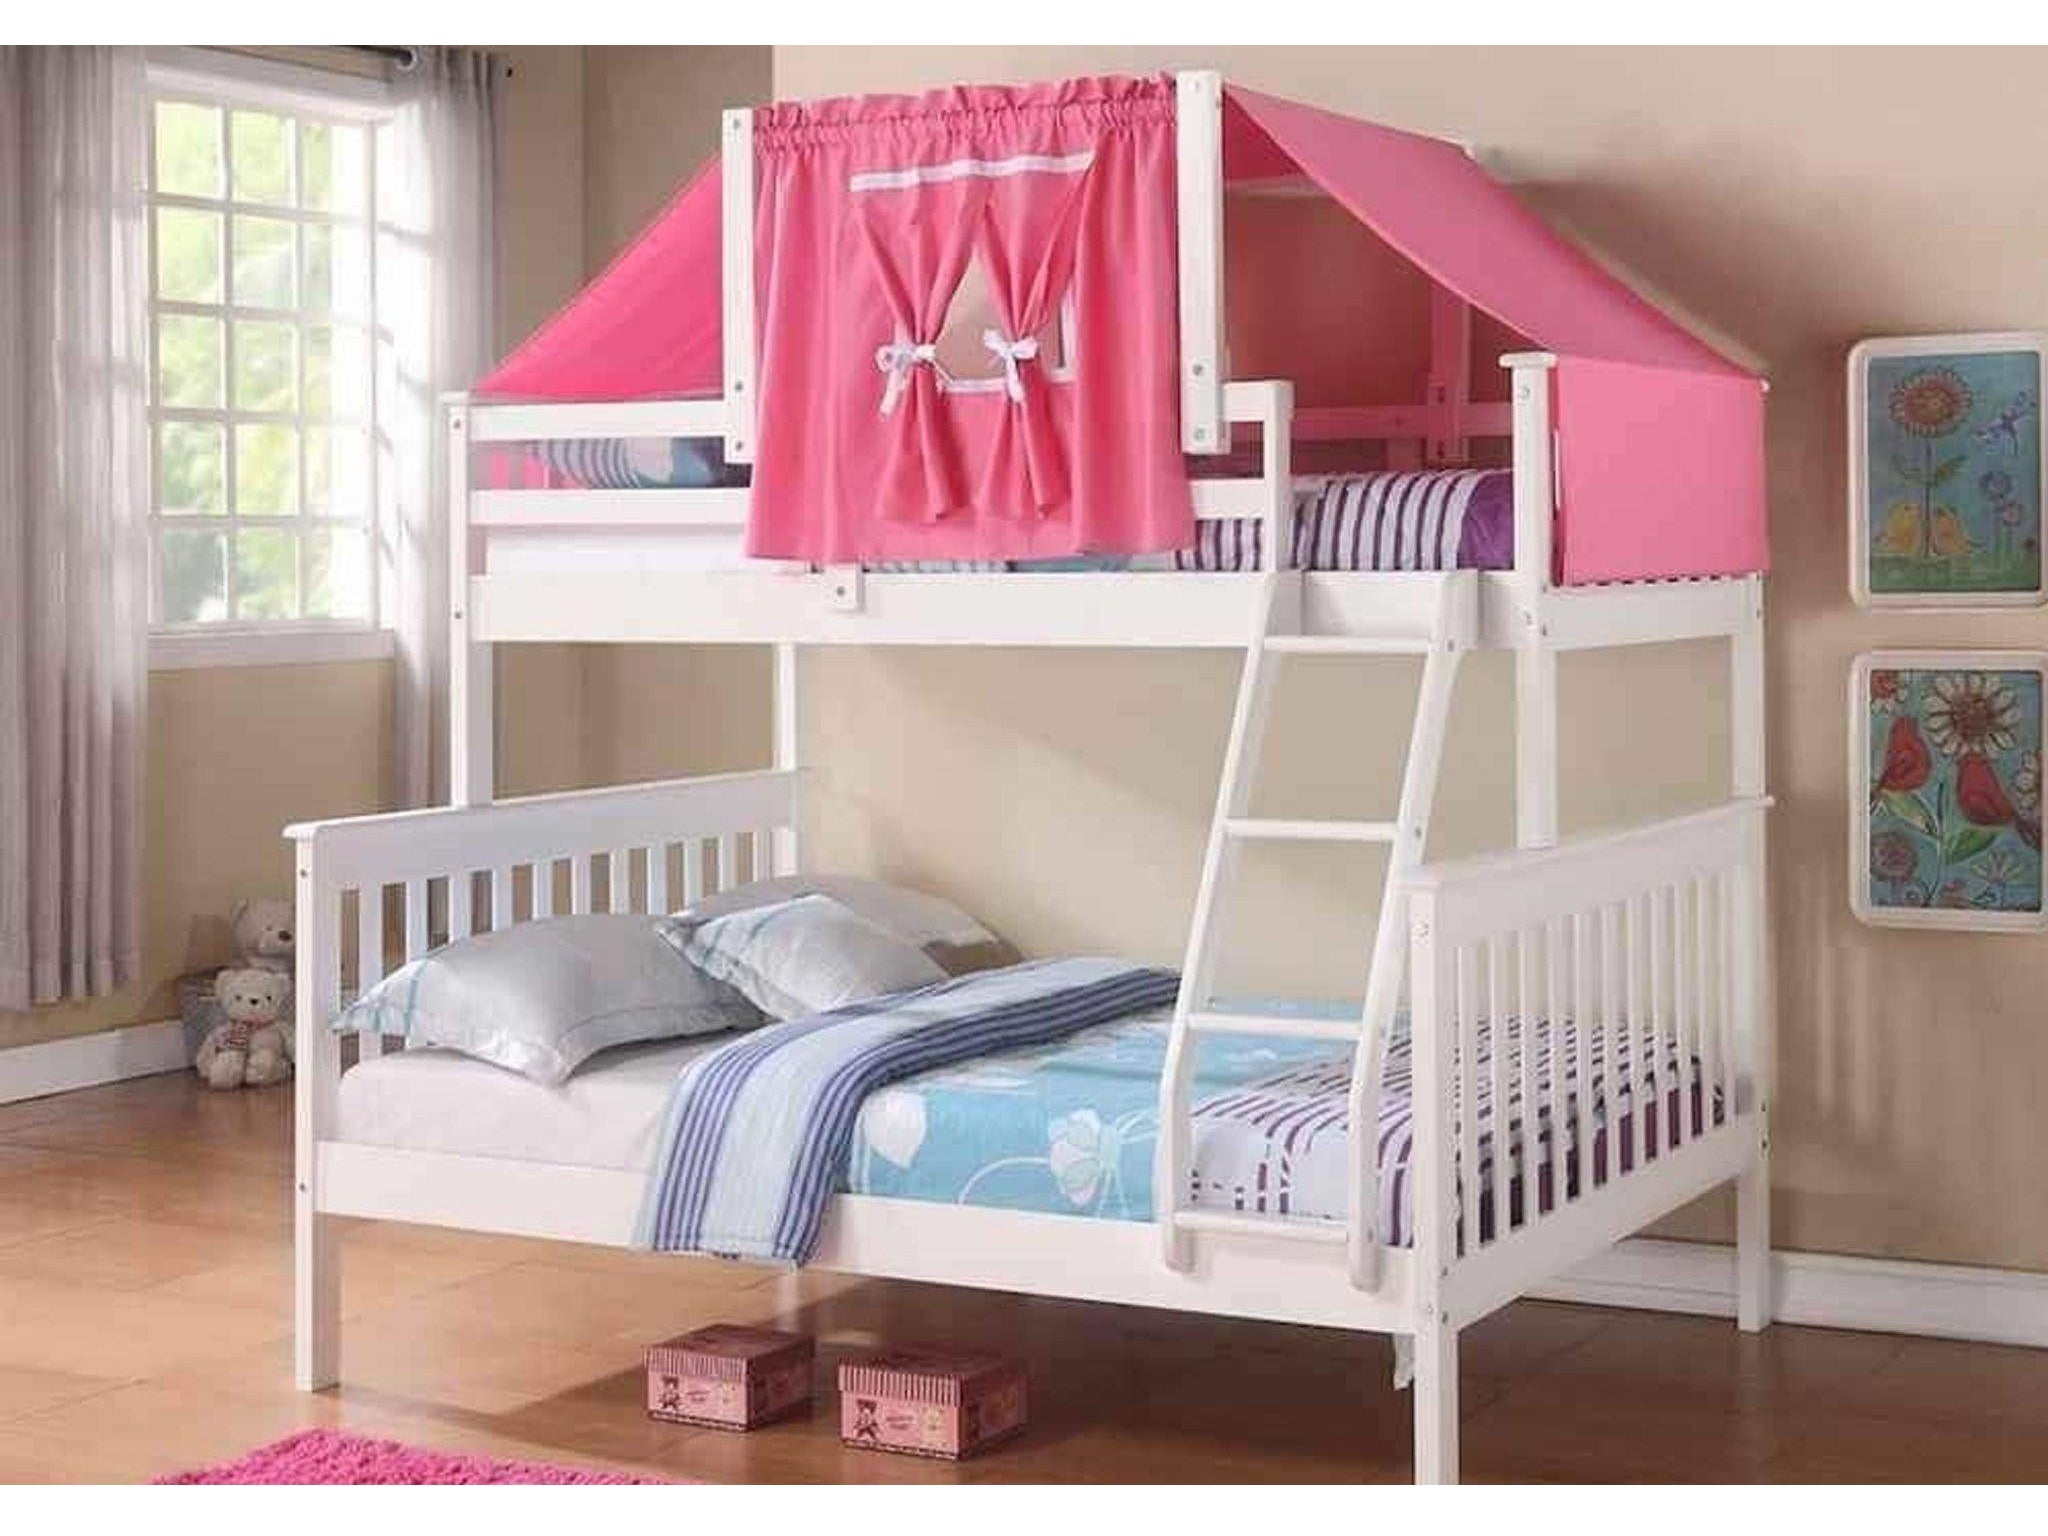 Indiana Twin Full Mission Bunk Bed W Pink Bunk Bed Tent Kit In A White